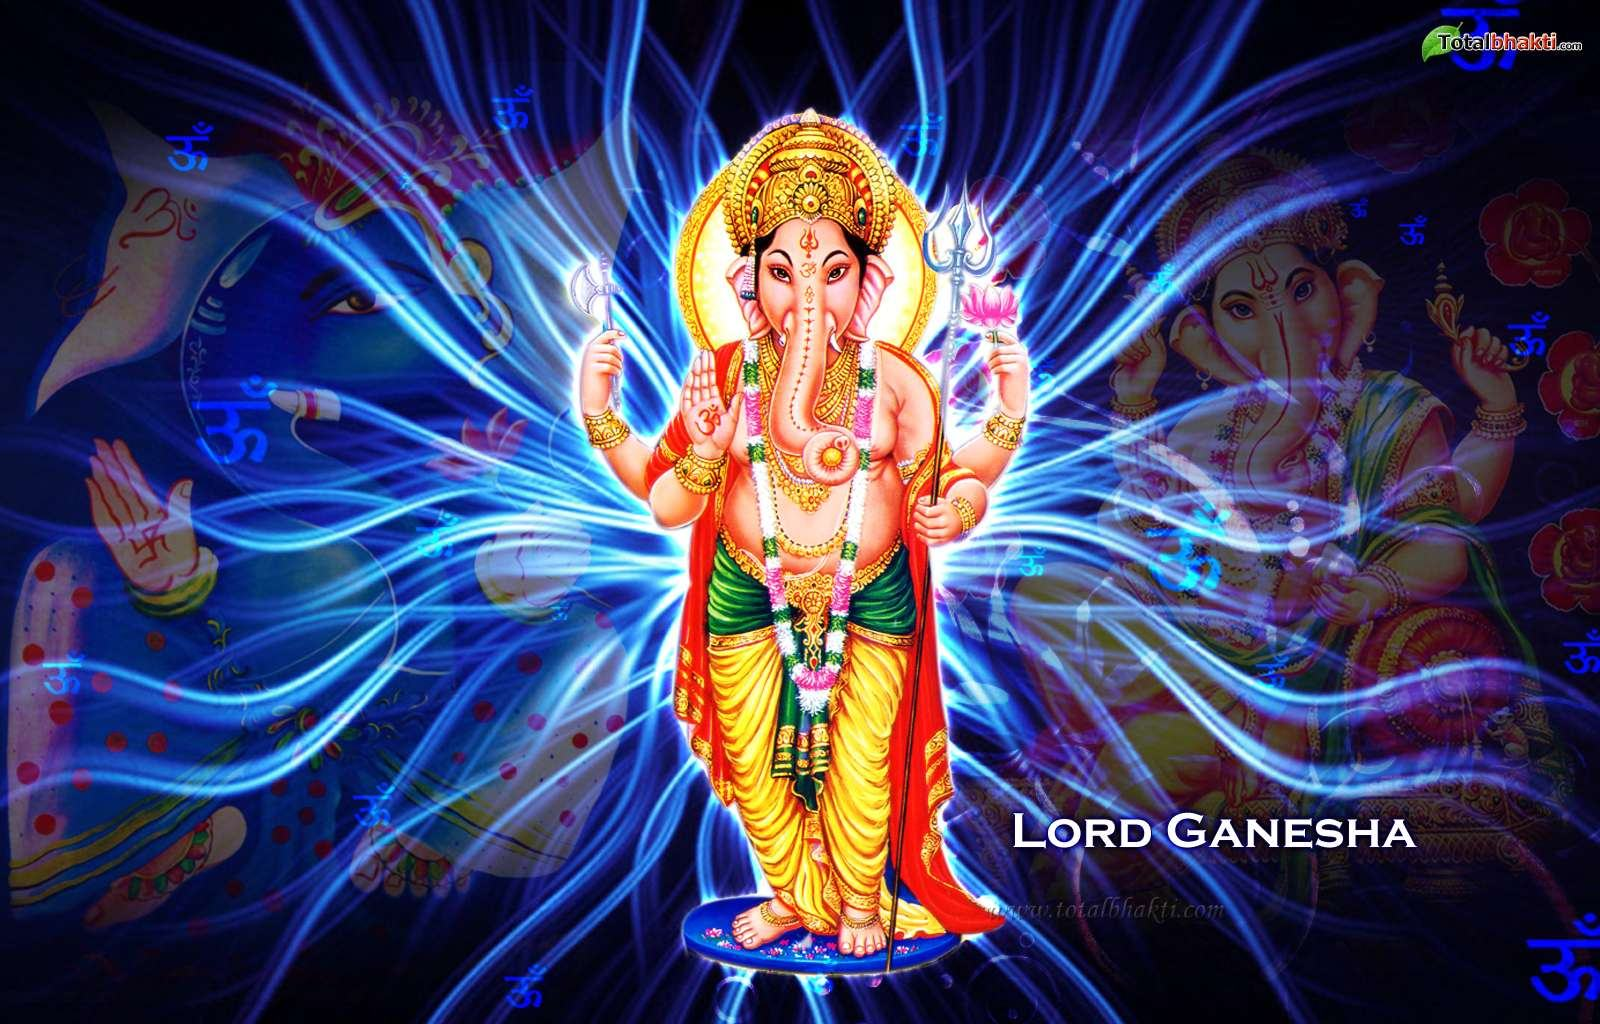 Wallpapers Backgrounds   lord ganesh Wallpaper blue white yellow color 1600x1024